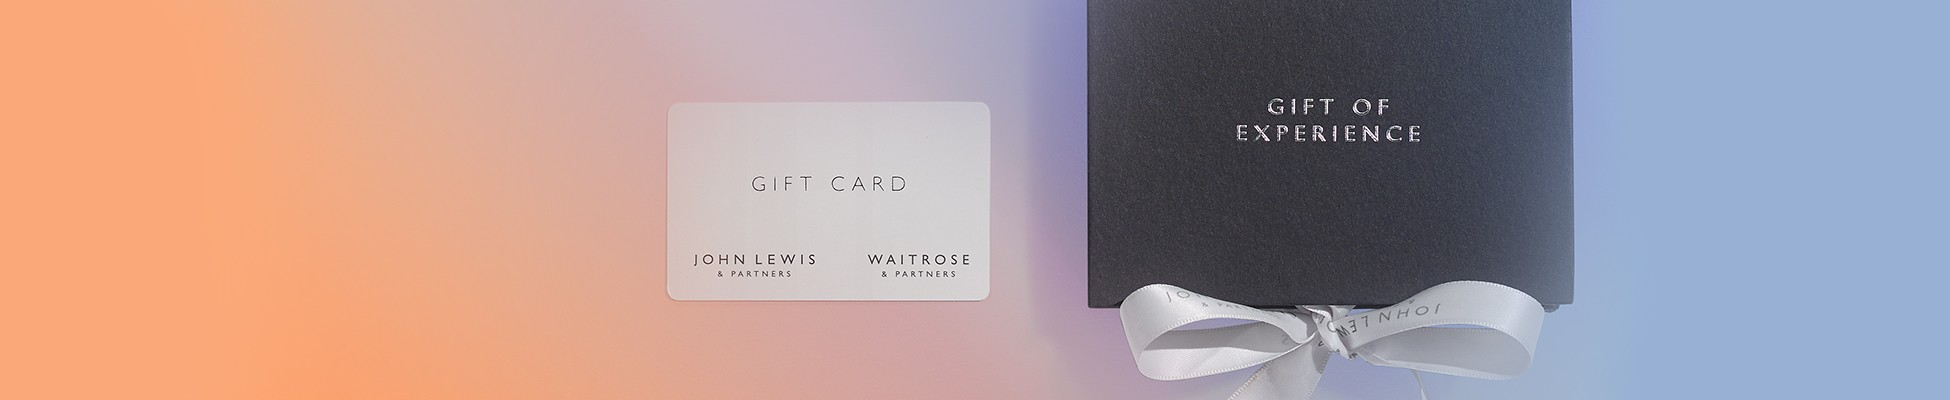 John Lewis & Partners - Valentines Day - Gift Card